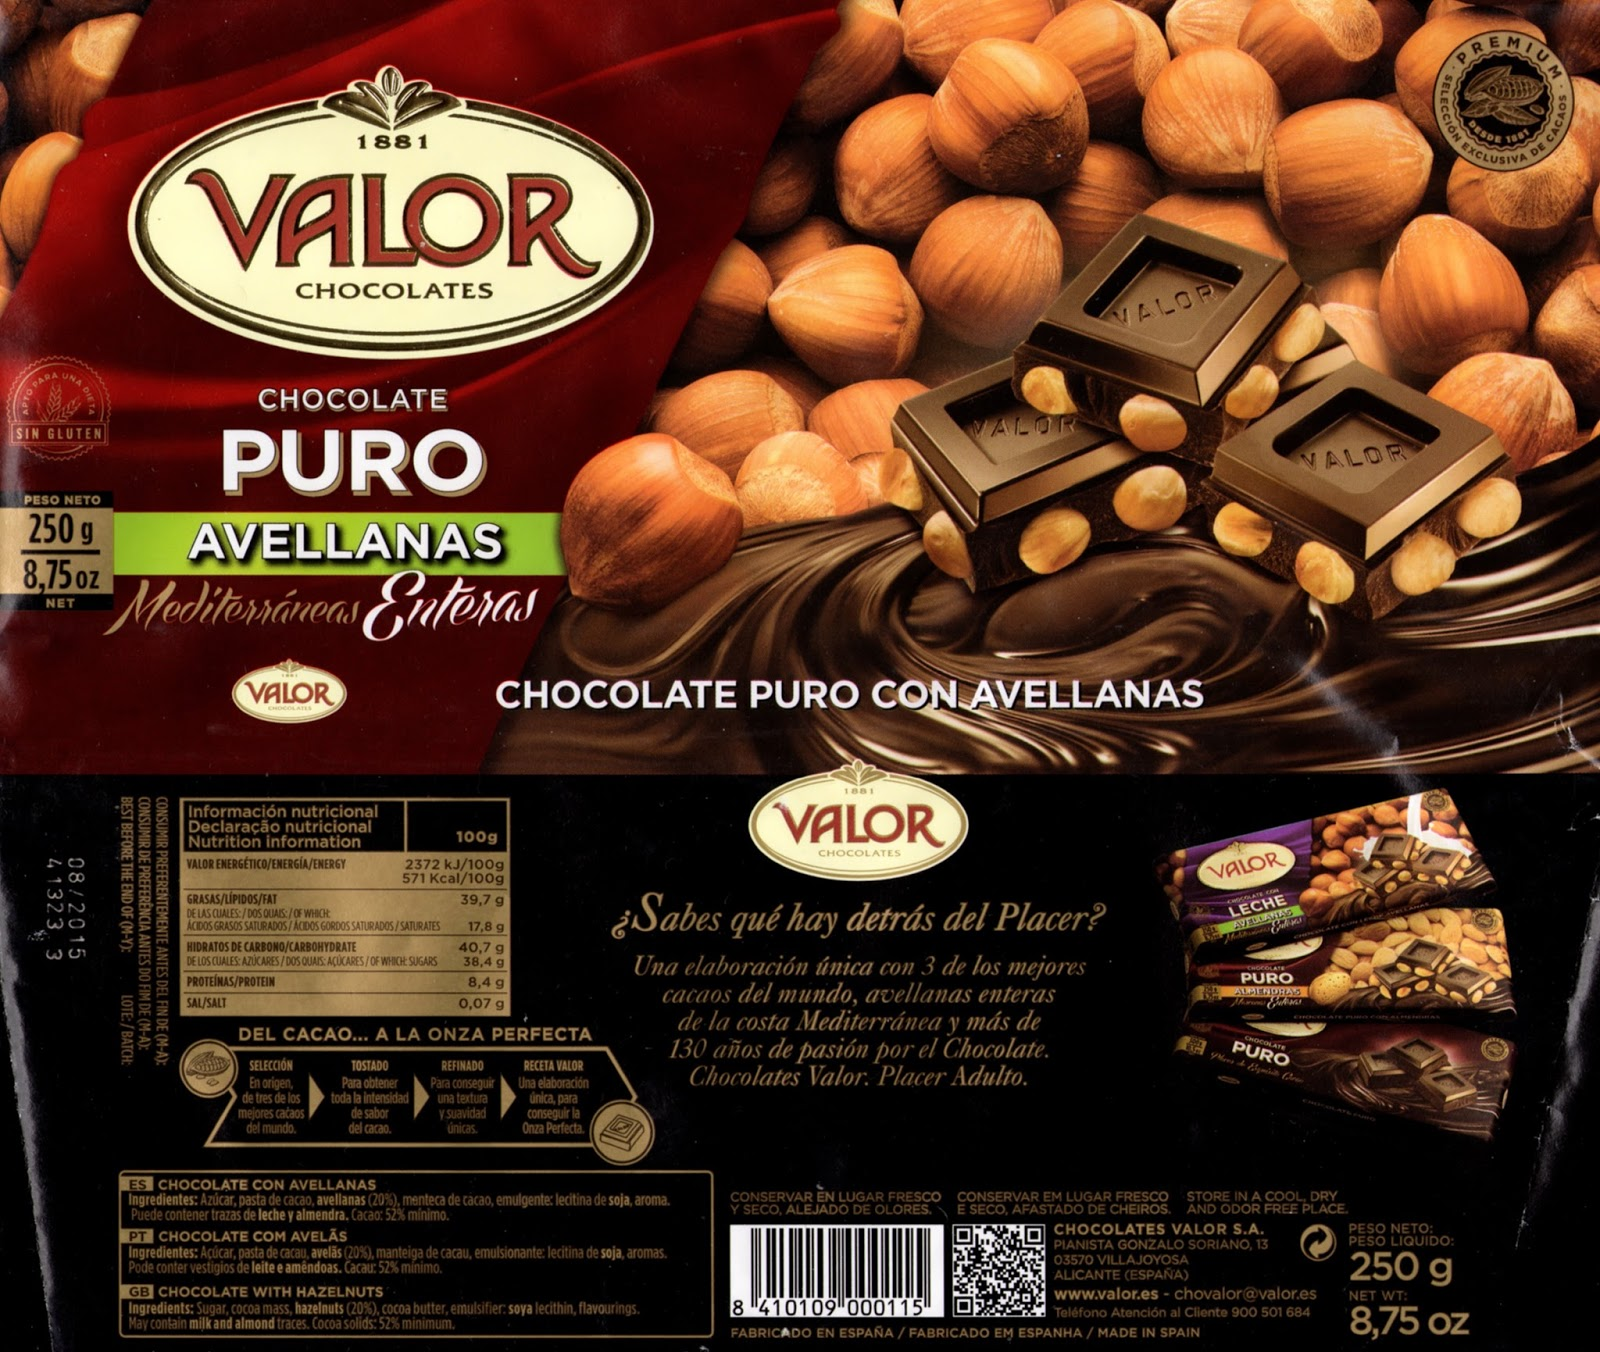 tablette de chocolat noir gourmand valor chocolate puro con avellanas